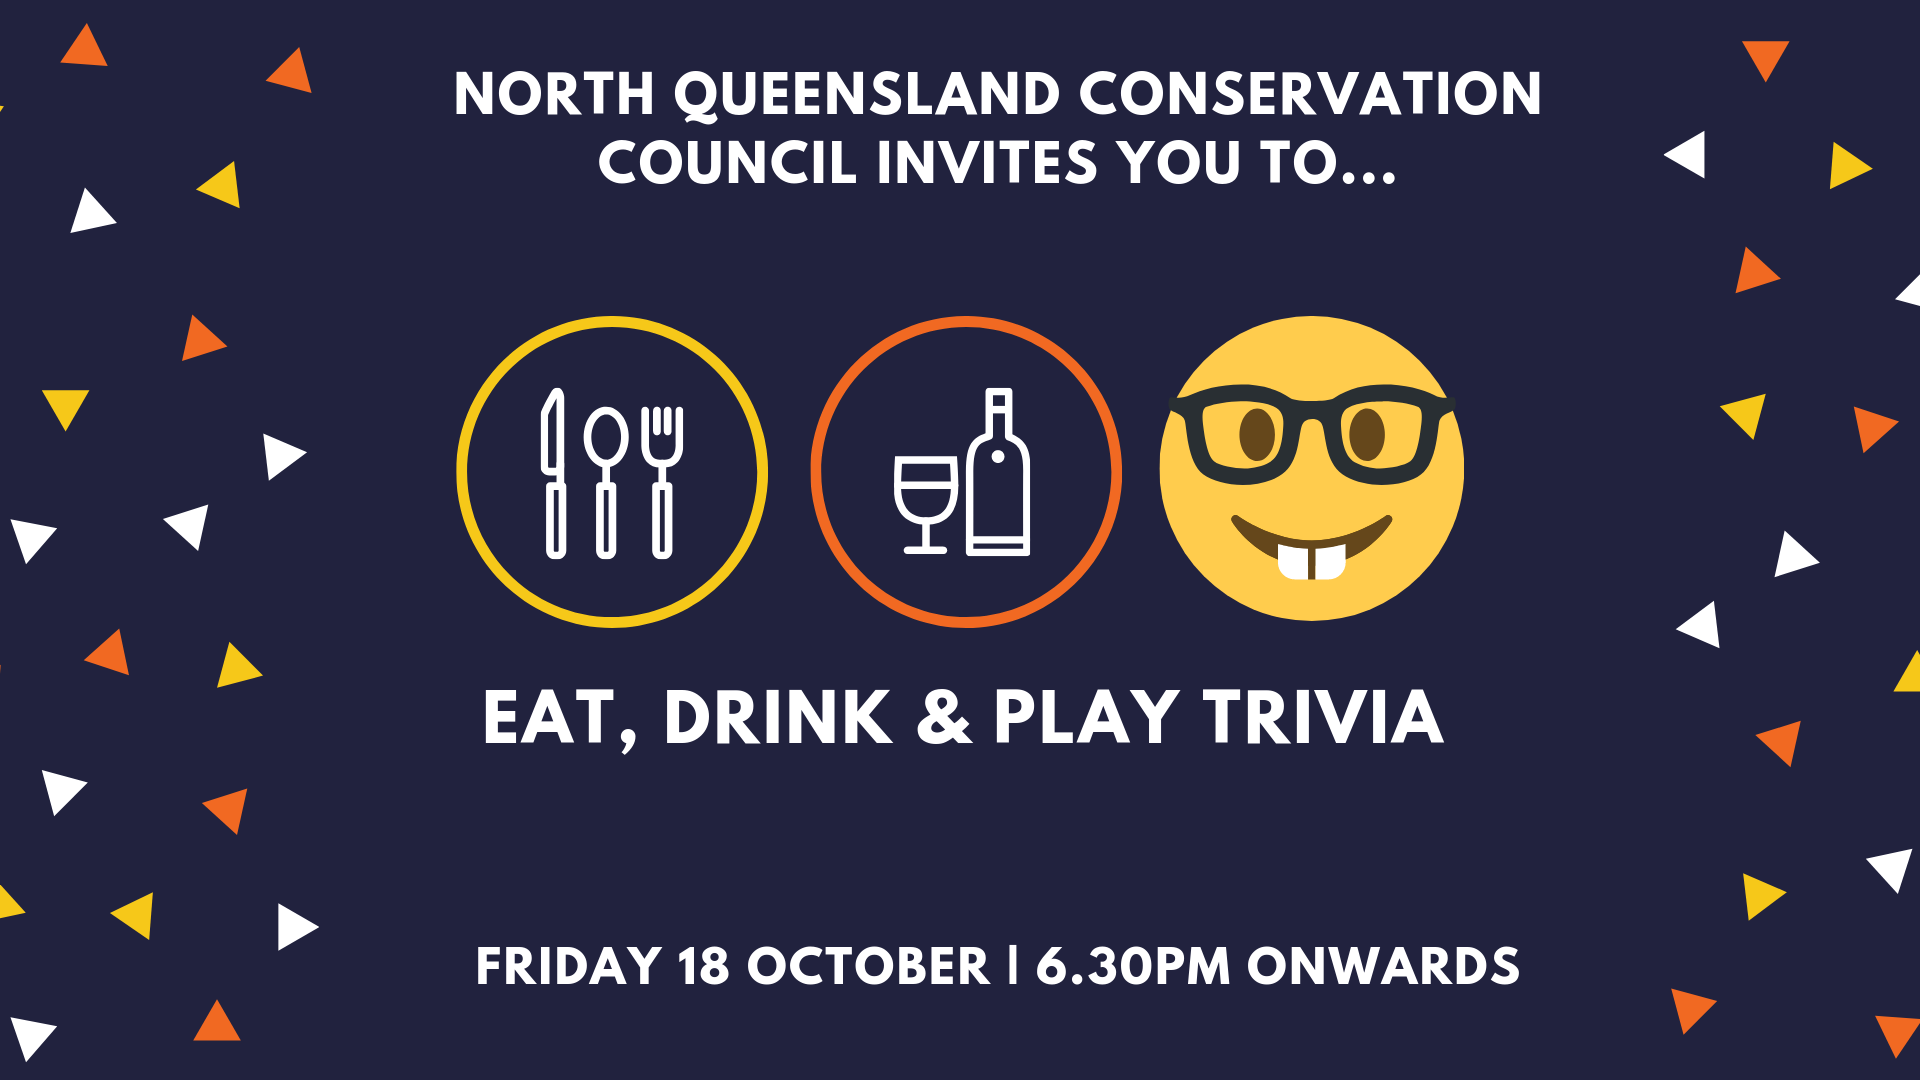 NQCC invites you to Eat, Drink and Play Trivia!